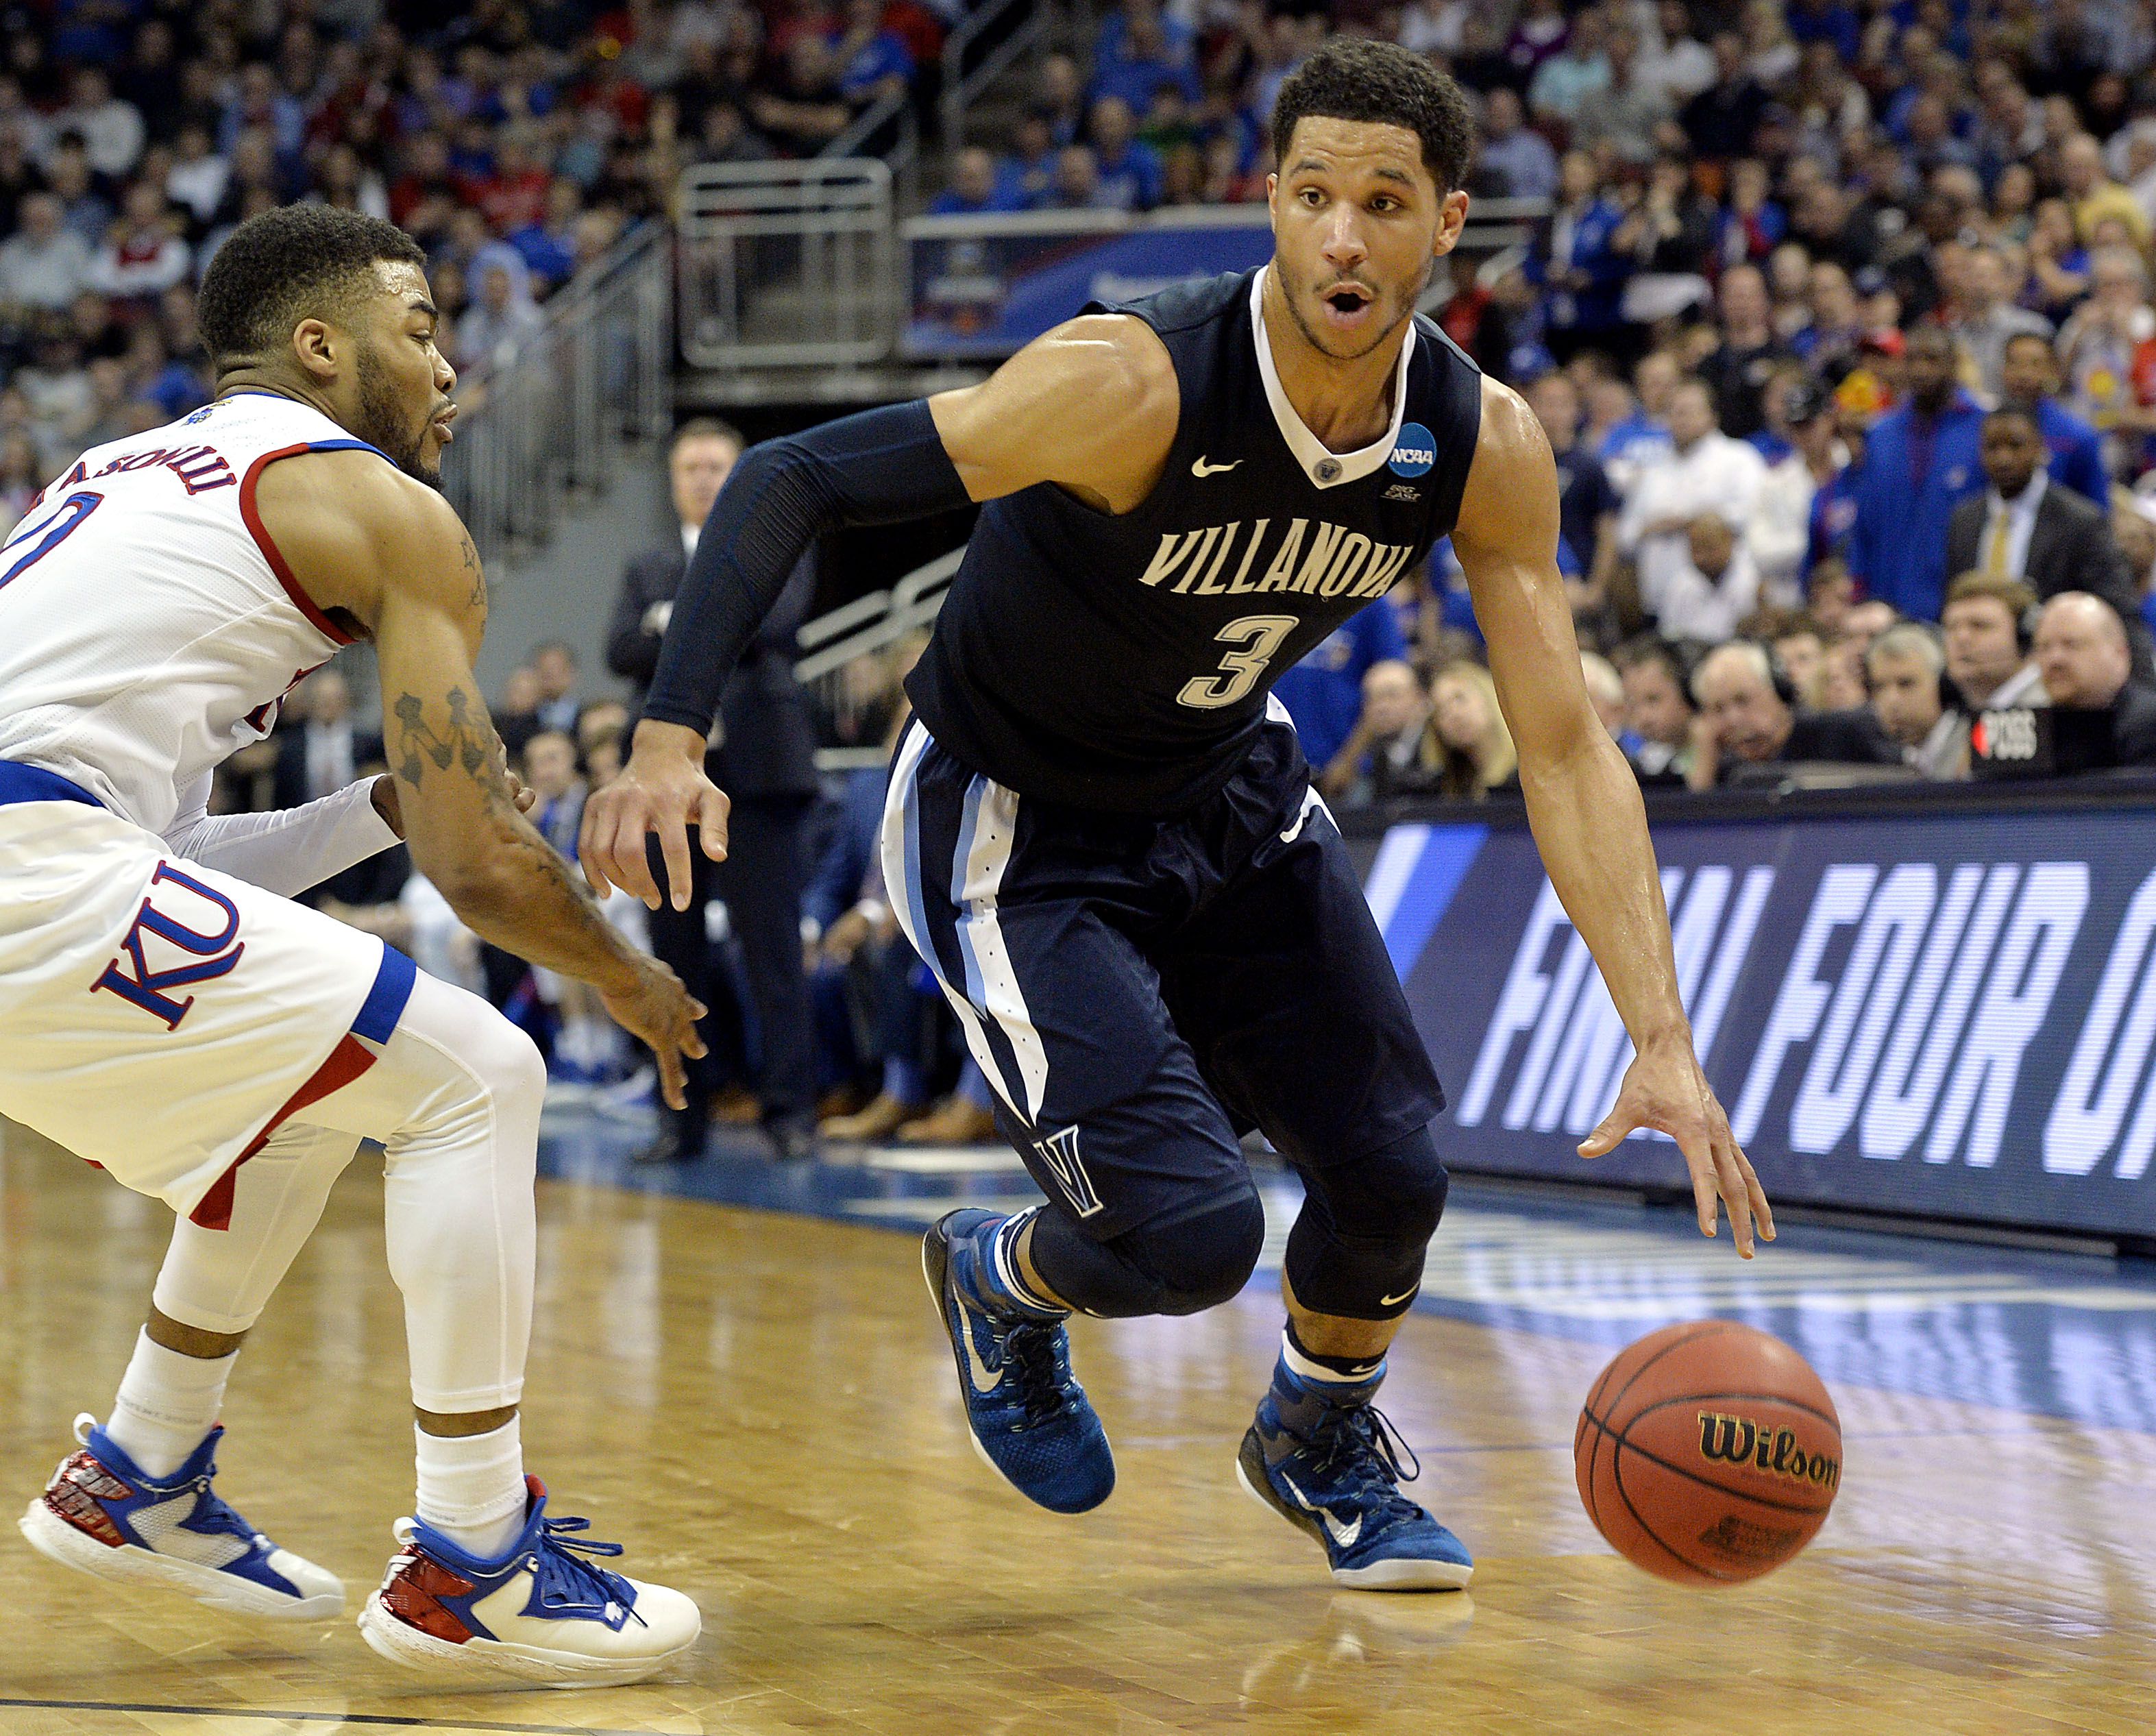 new product 6befe c7eb7 ... Wildcats guard Josh Hart (3) drives to the basket against Kansas  Jayhawks guard Frank Mason III (0) during the second half of the south  regional ...